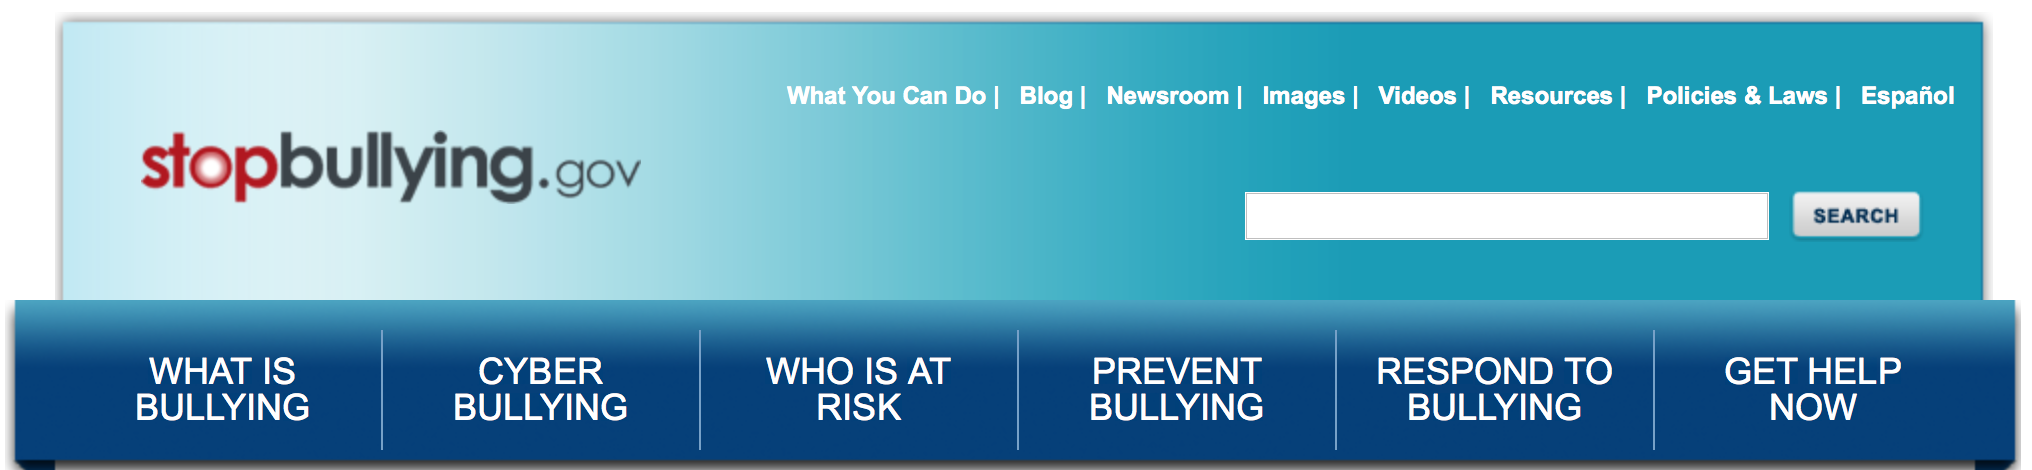 Screen_Shot_stopbullying-gov_banner.png